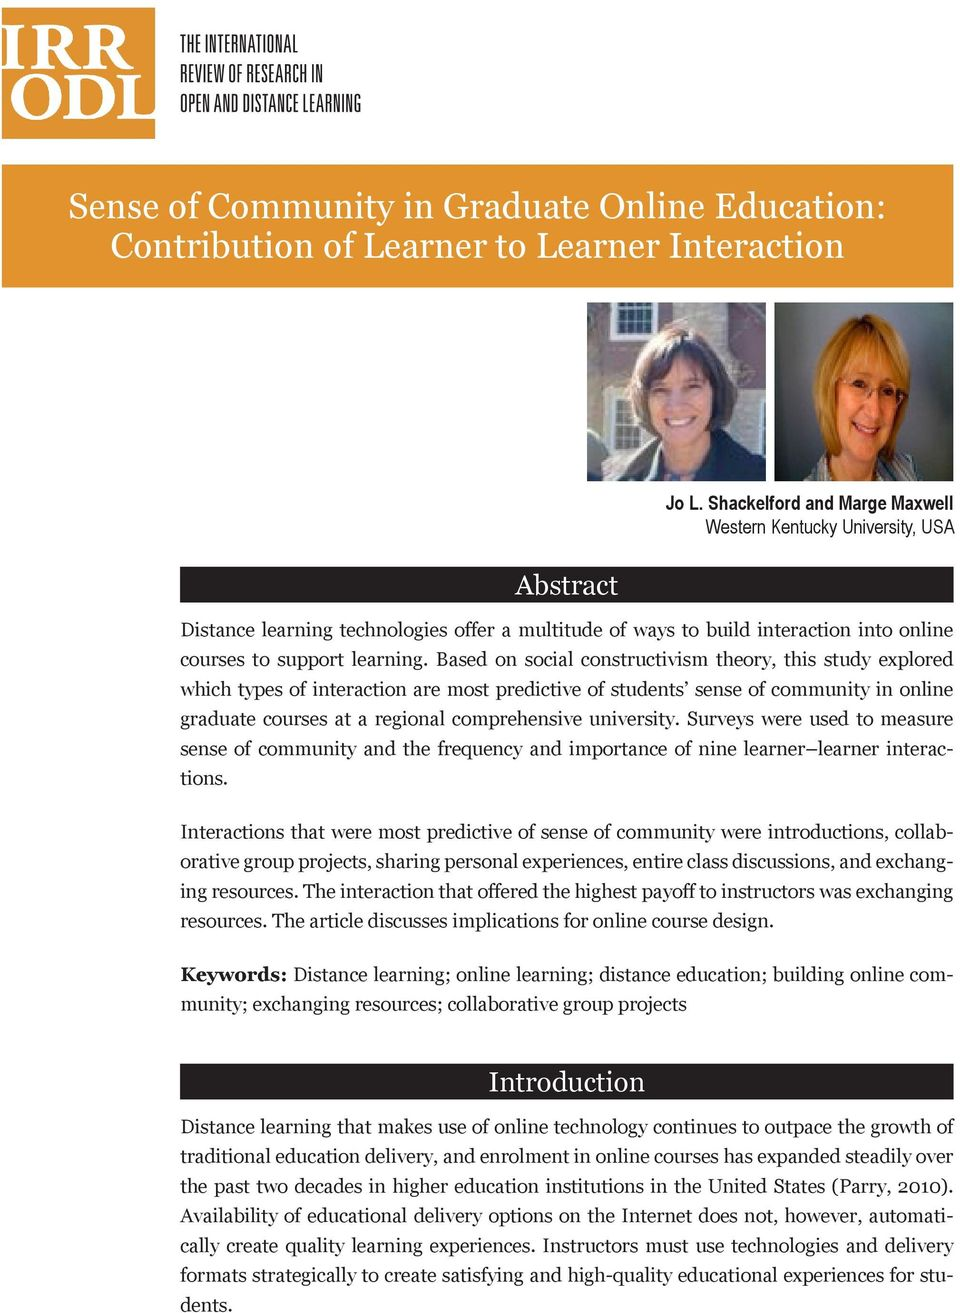 Based on social constructivism theory, this study explored which types of interaction are most predictive of students sense of community in online graduate courses at a regional comprehensive